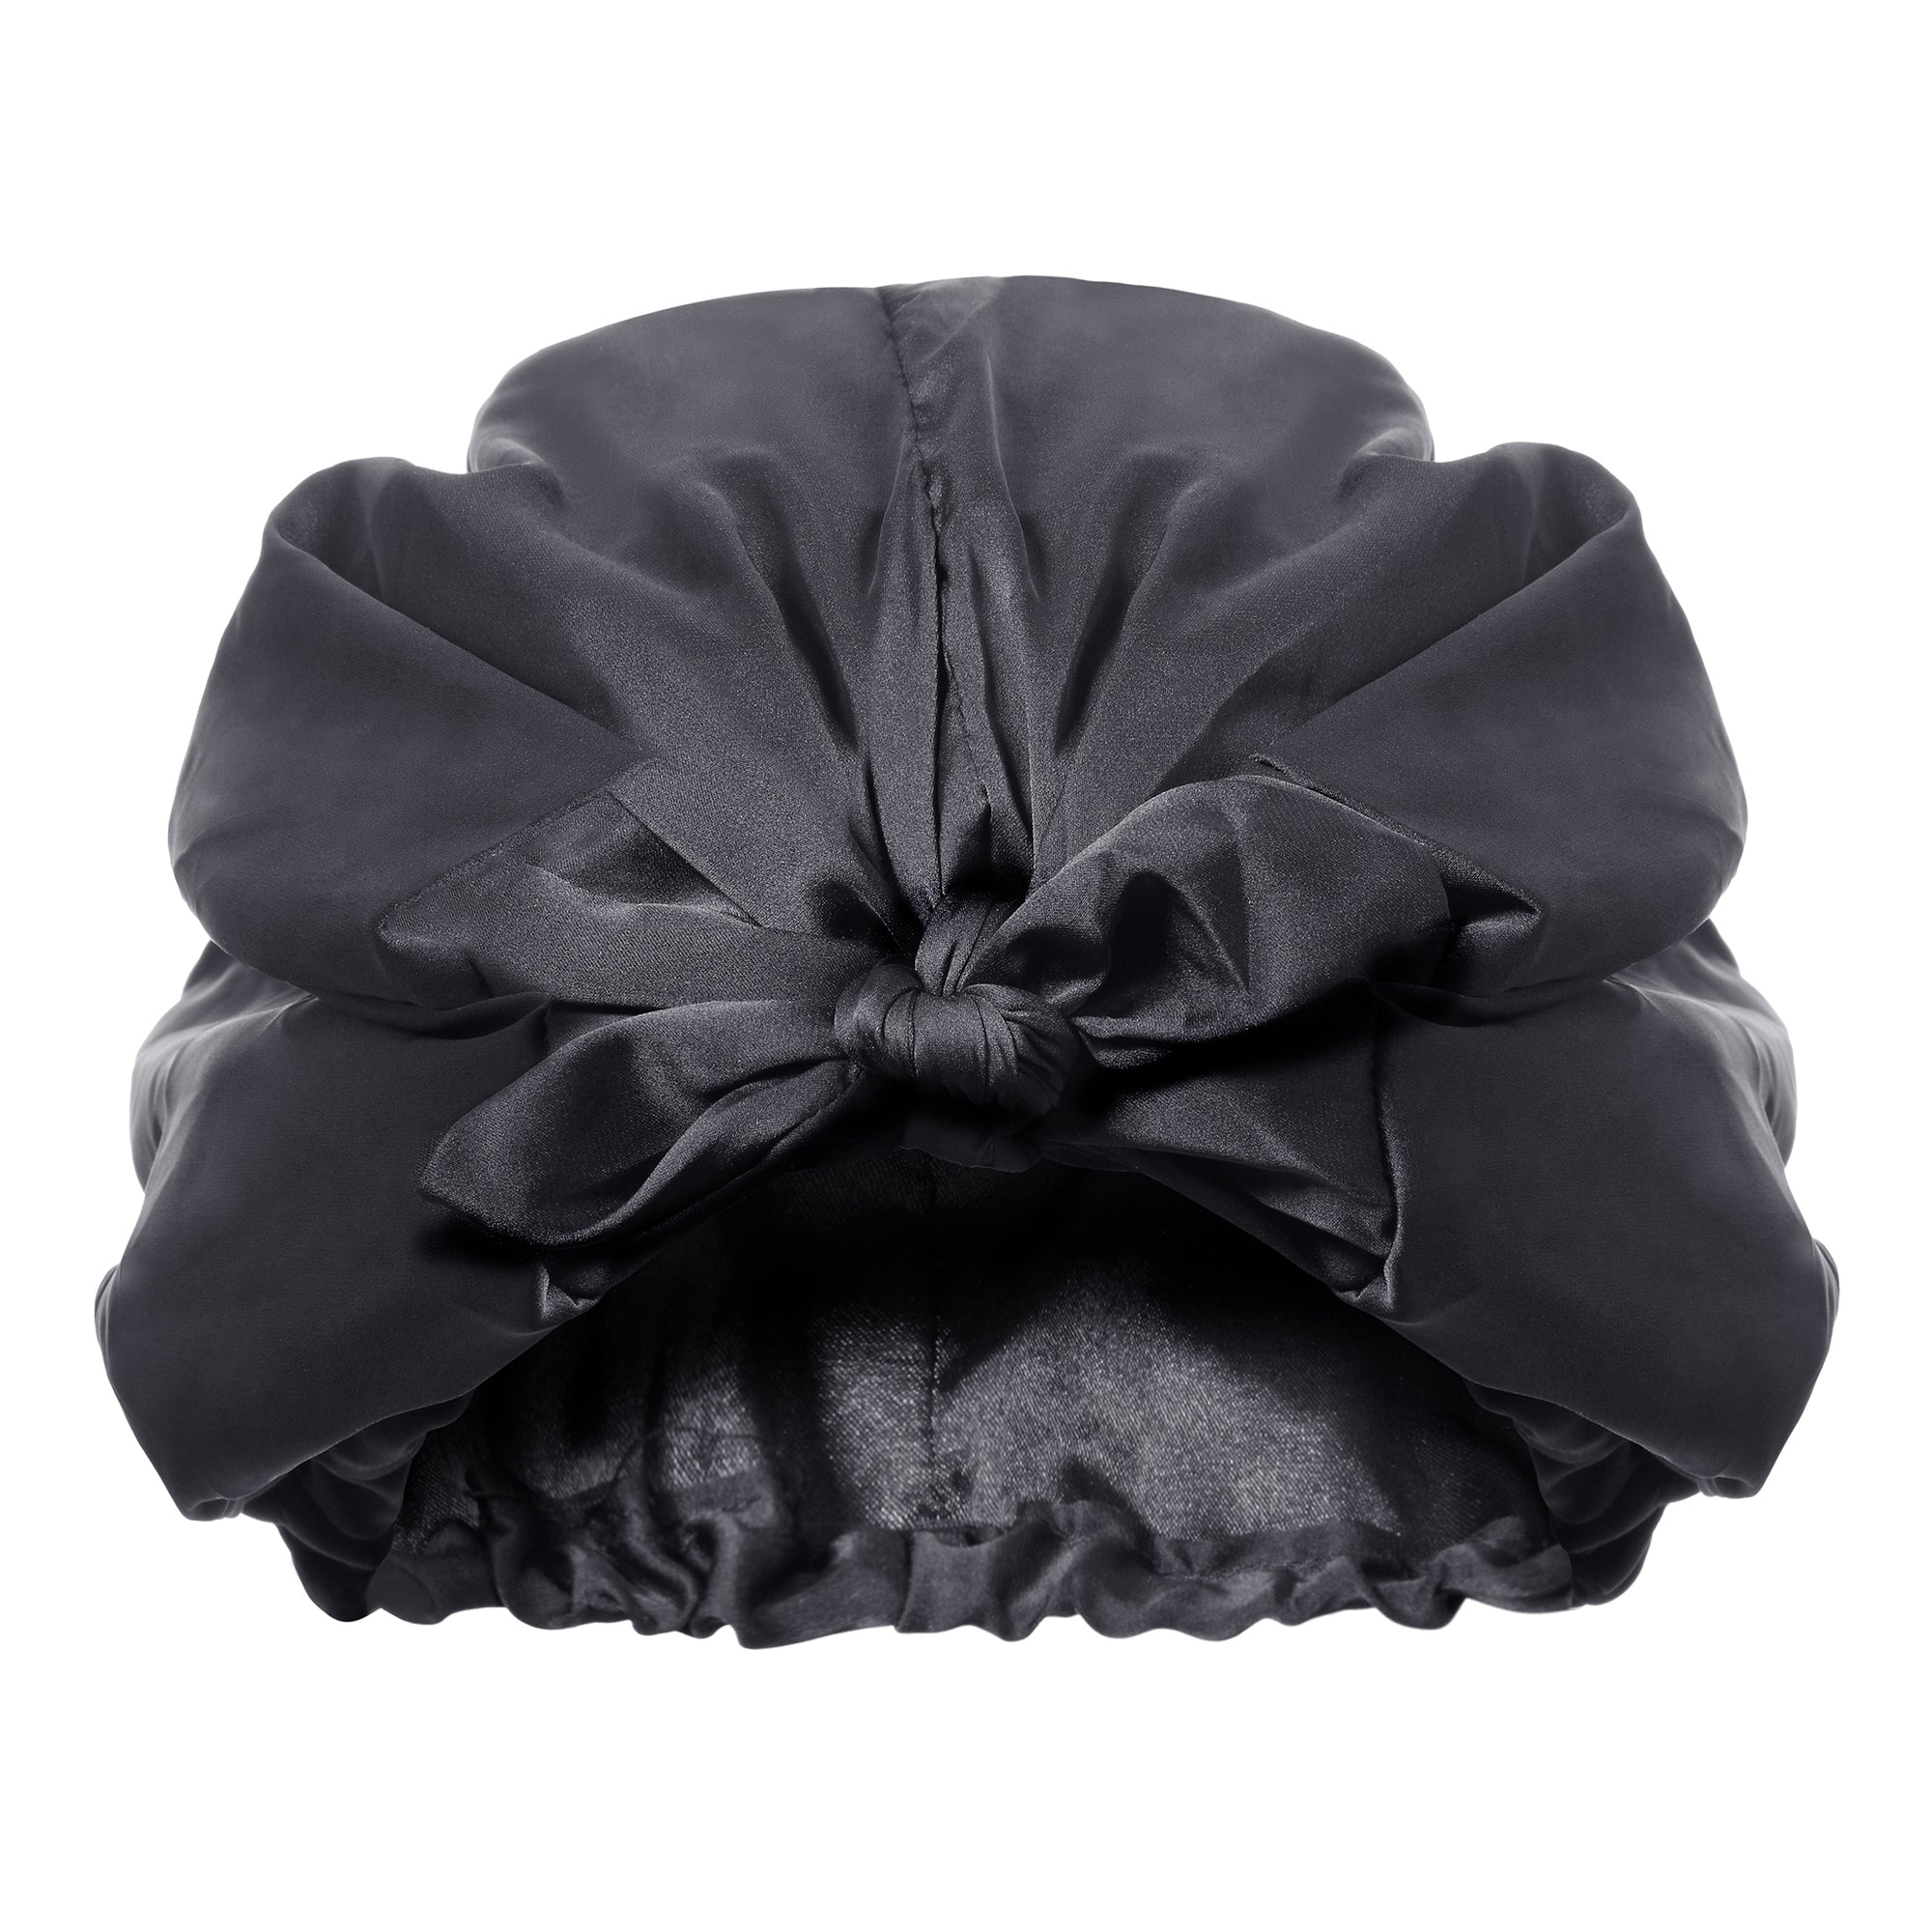 Only Curls Satin Sleep Turban - Black - Only Curls